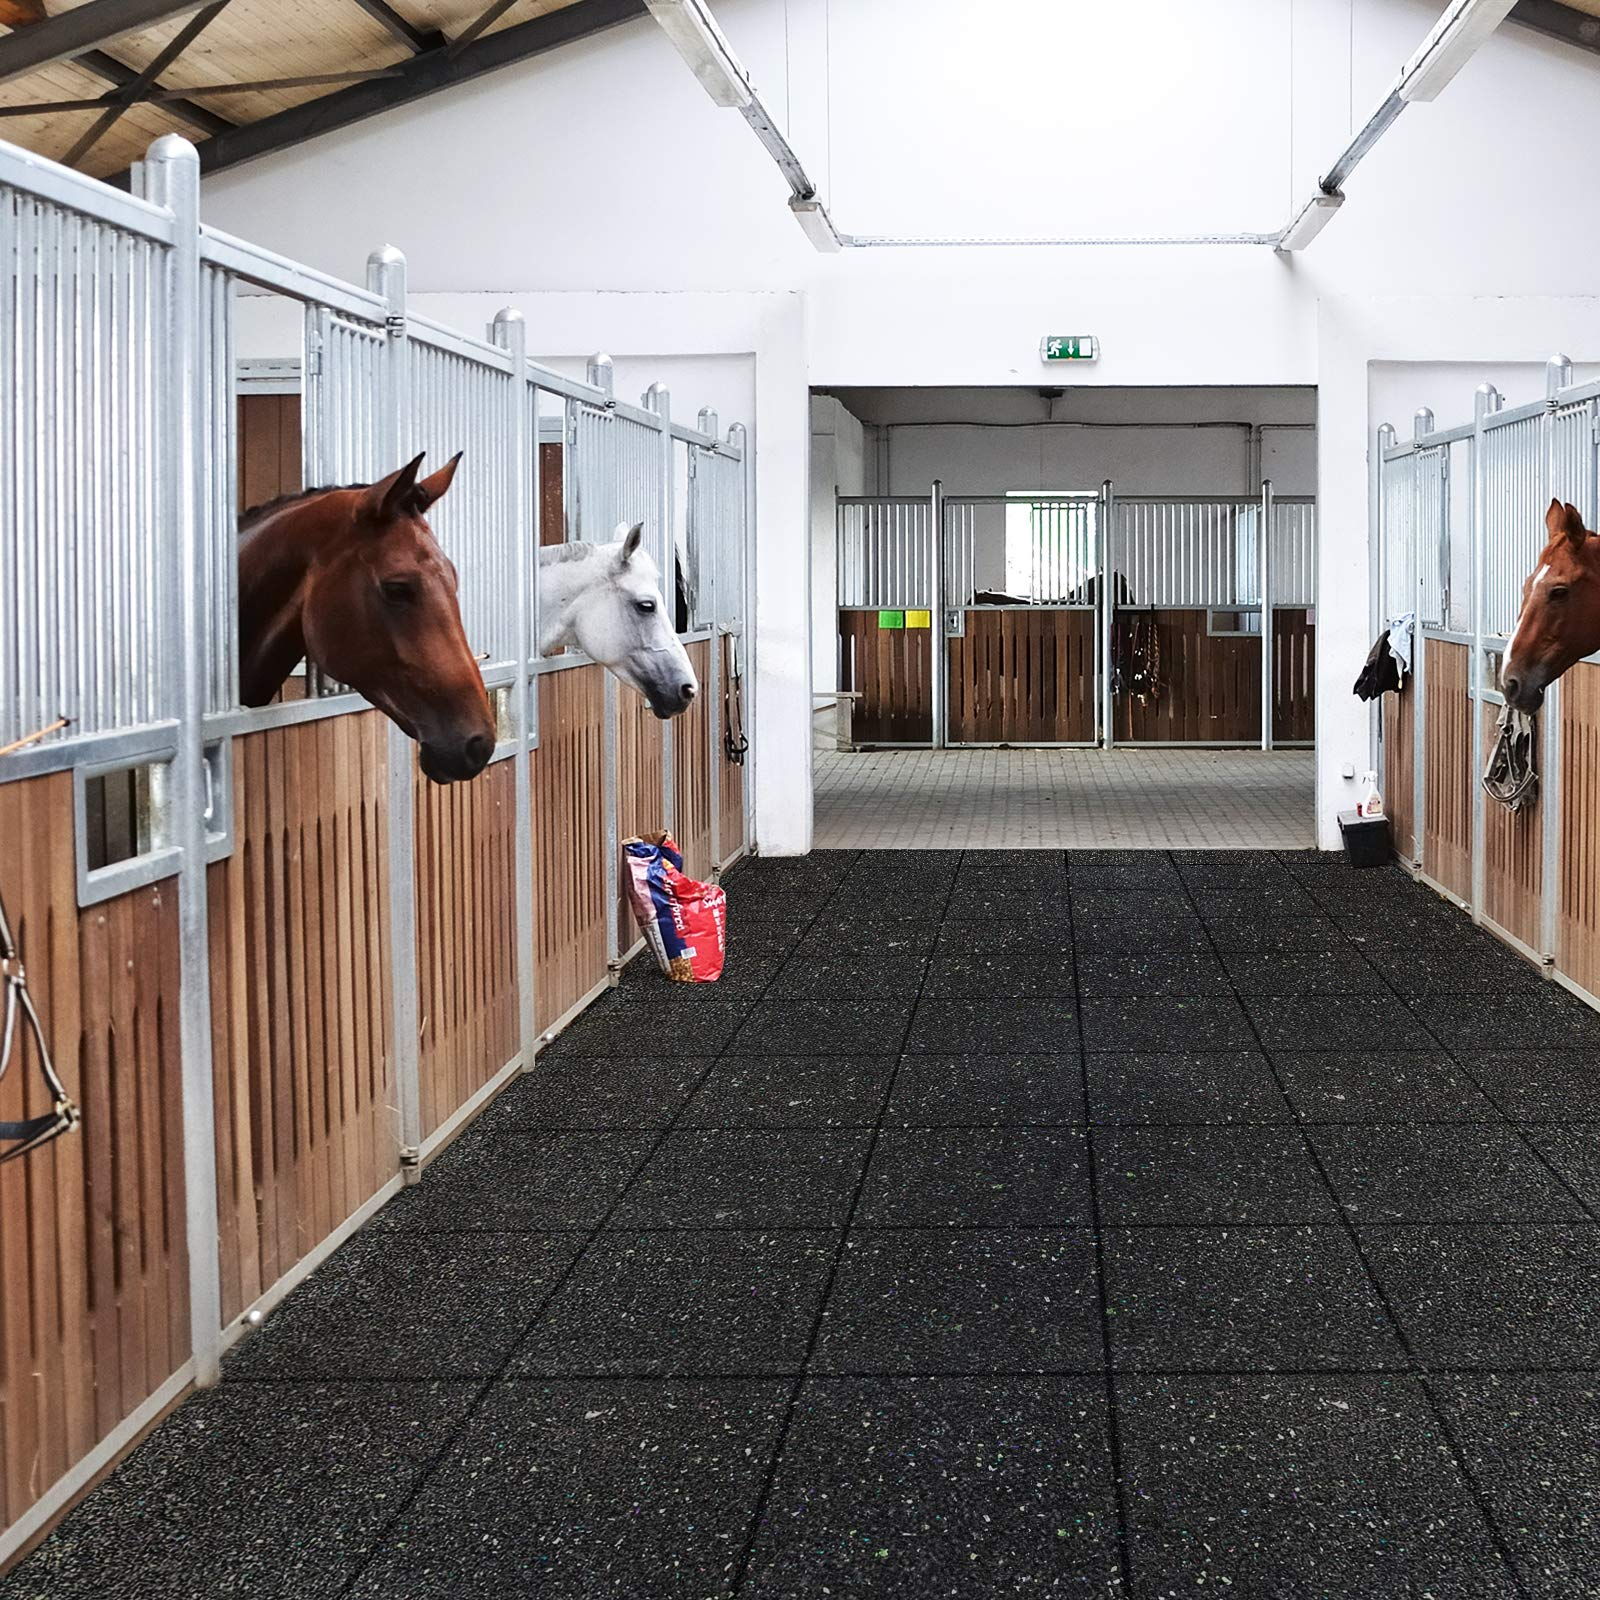 Ergocell Recycled Rubber Floor Mat – Shock Absorbent Gym Mat Flooring & Horse Stall Mat | Three Thicknesses, Multiple Sizes | 3/8'' - 2' x 7' by Ergocell (Image #5)